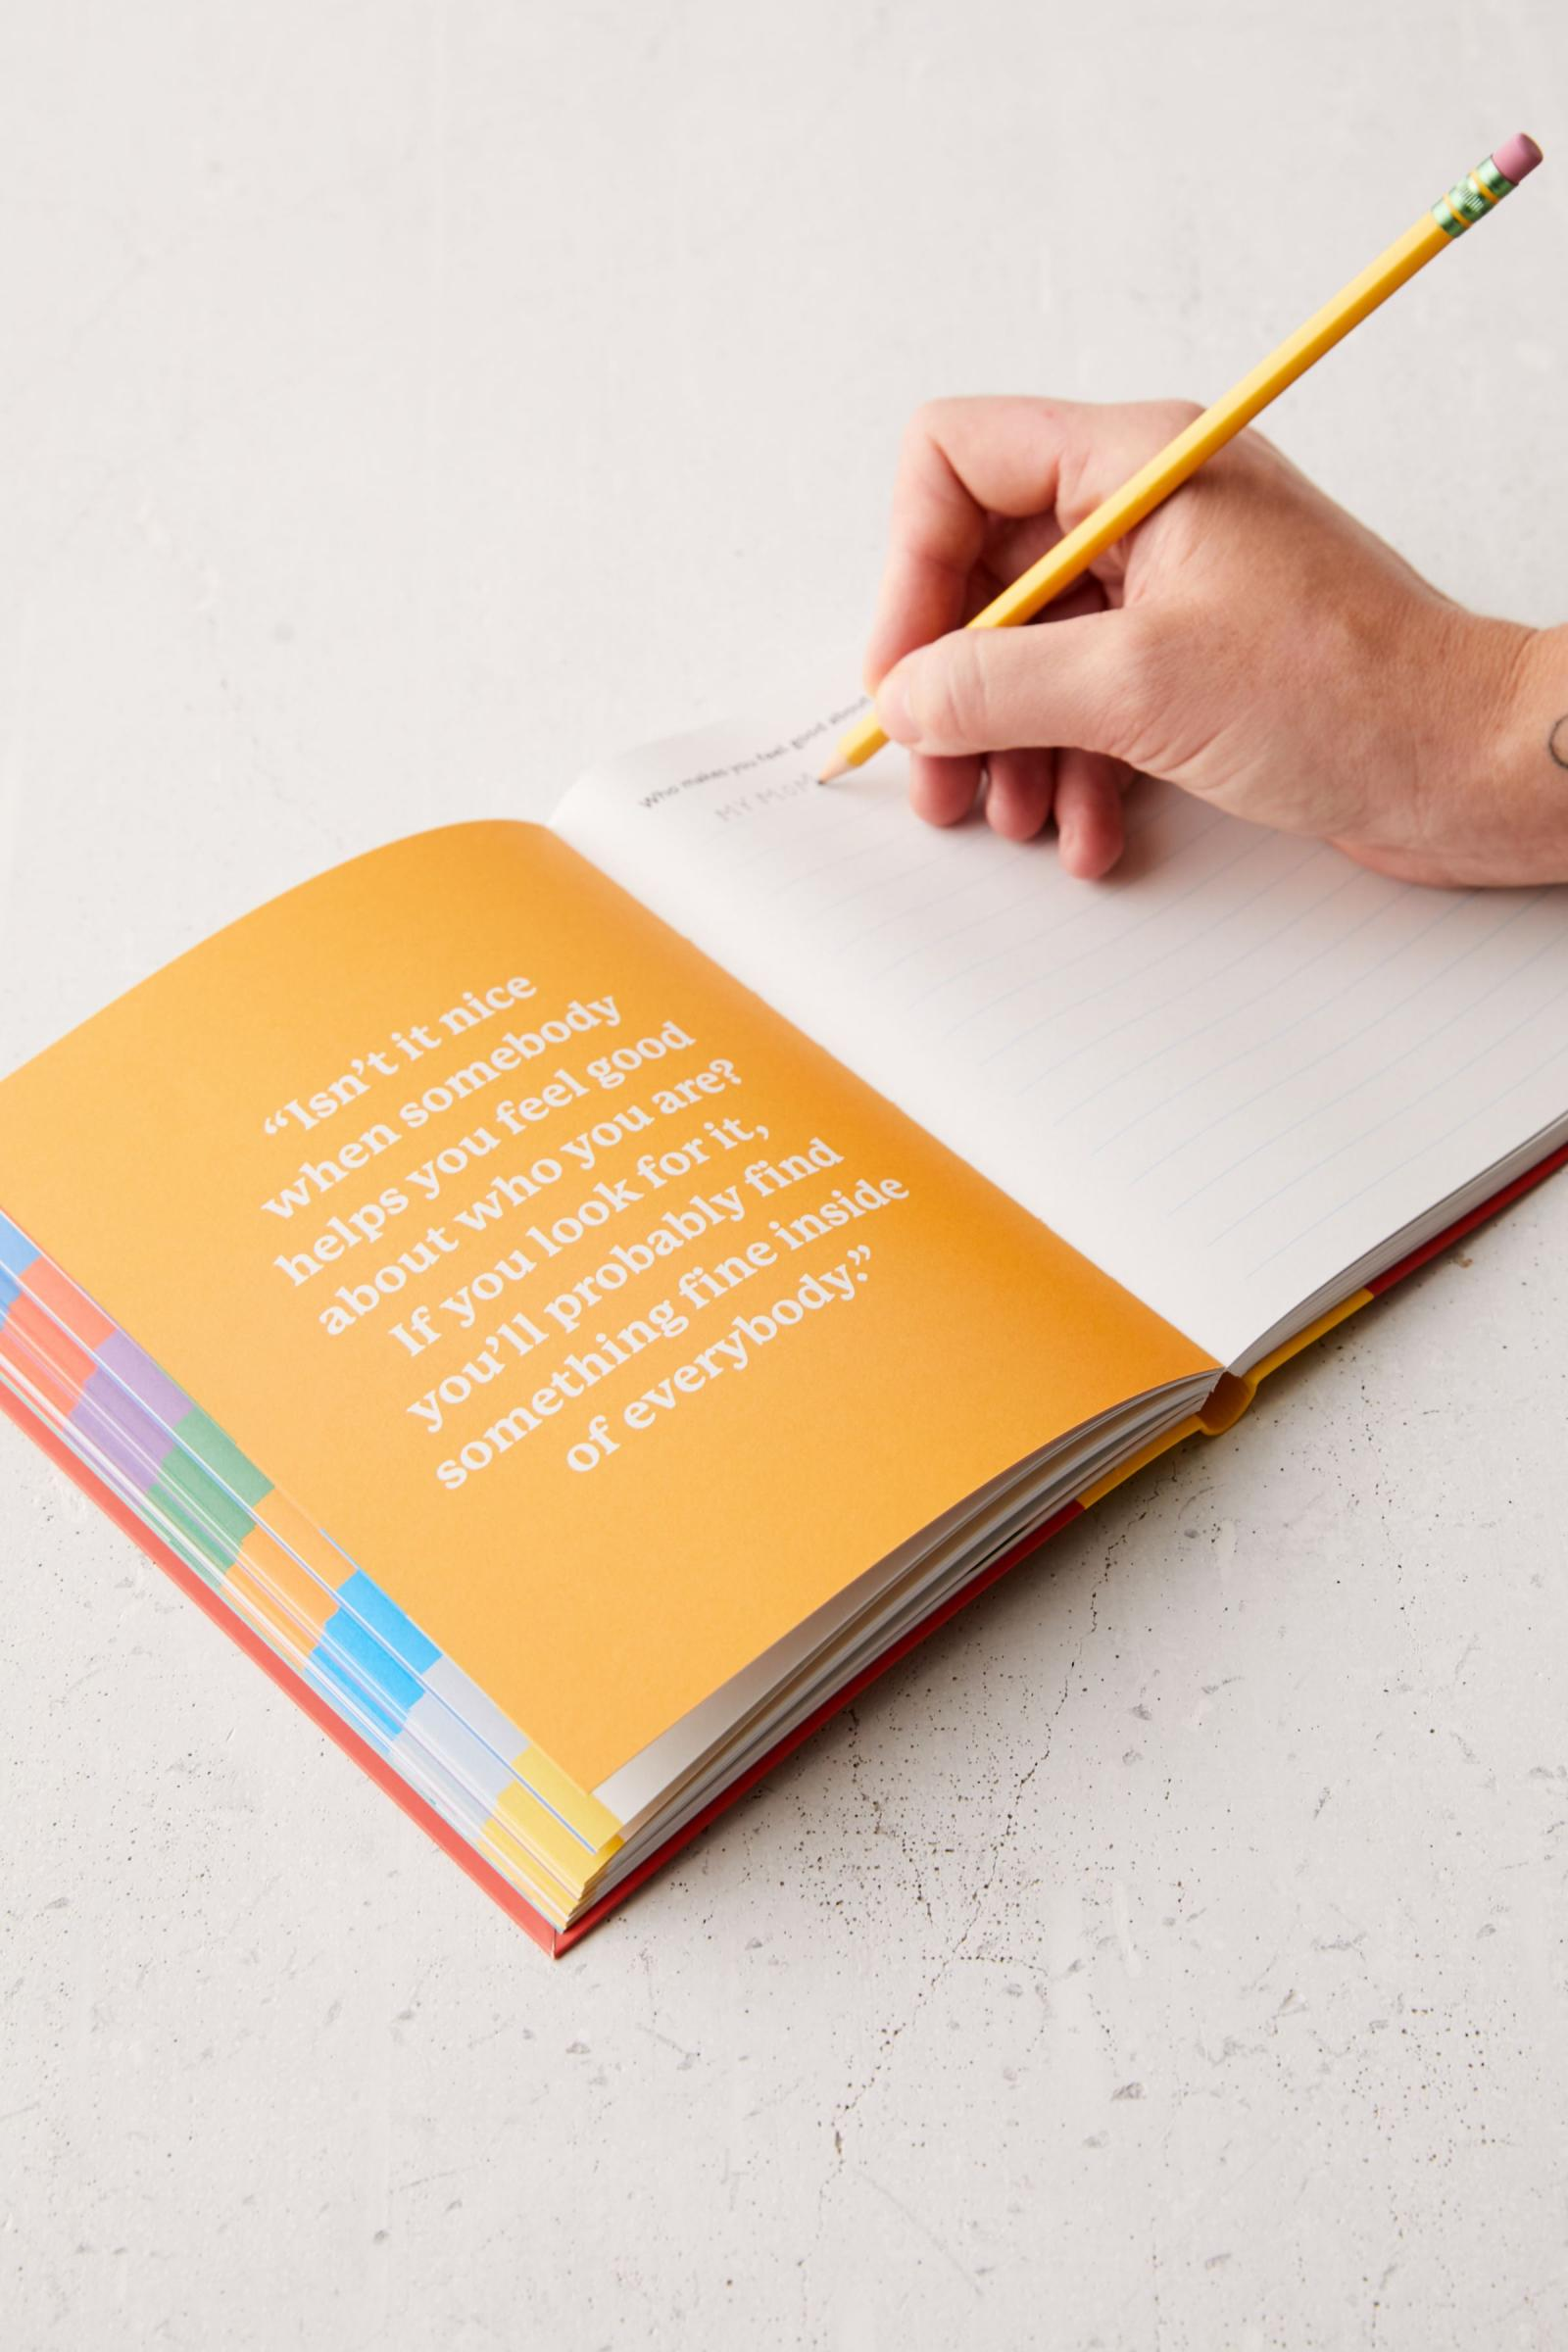 Mister Rogers Neighborhood My Neighborhood Activity Journal By Fred Rogers Productions Urban Outfitters Singapore